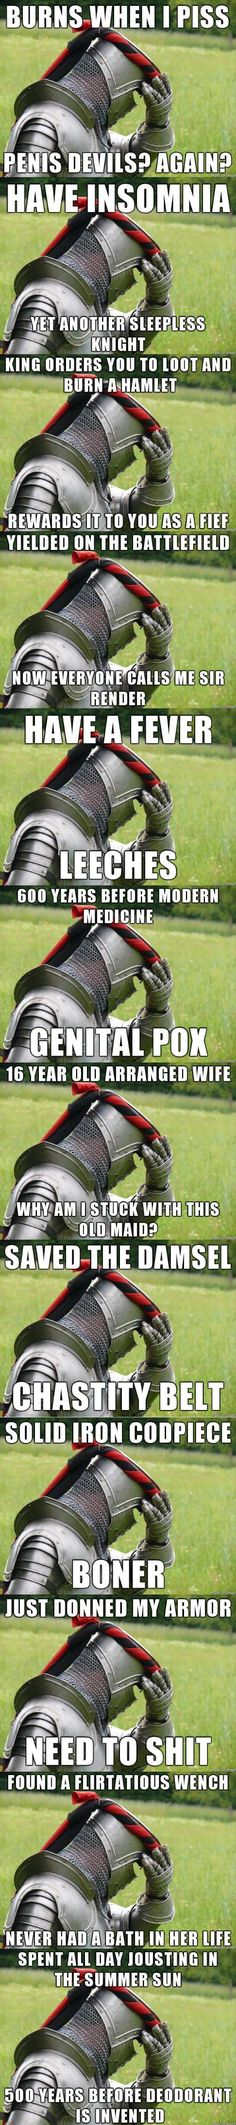 Funny Memes 40 Funny Images That Are Not At All Boring